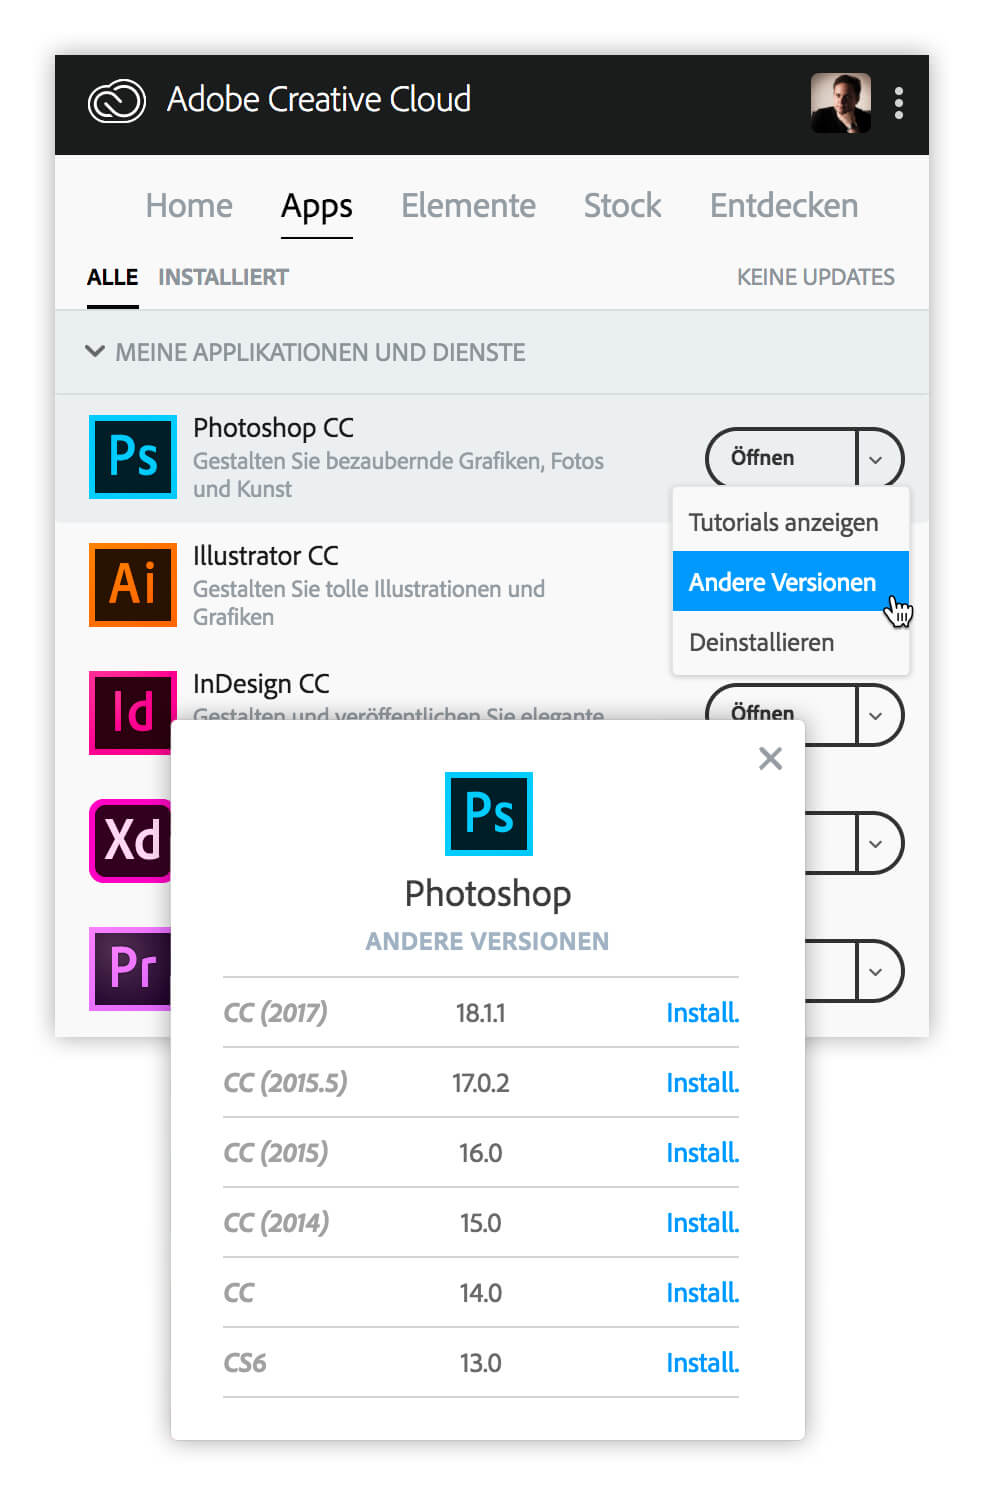 Die Creative Cloud Desktop App